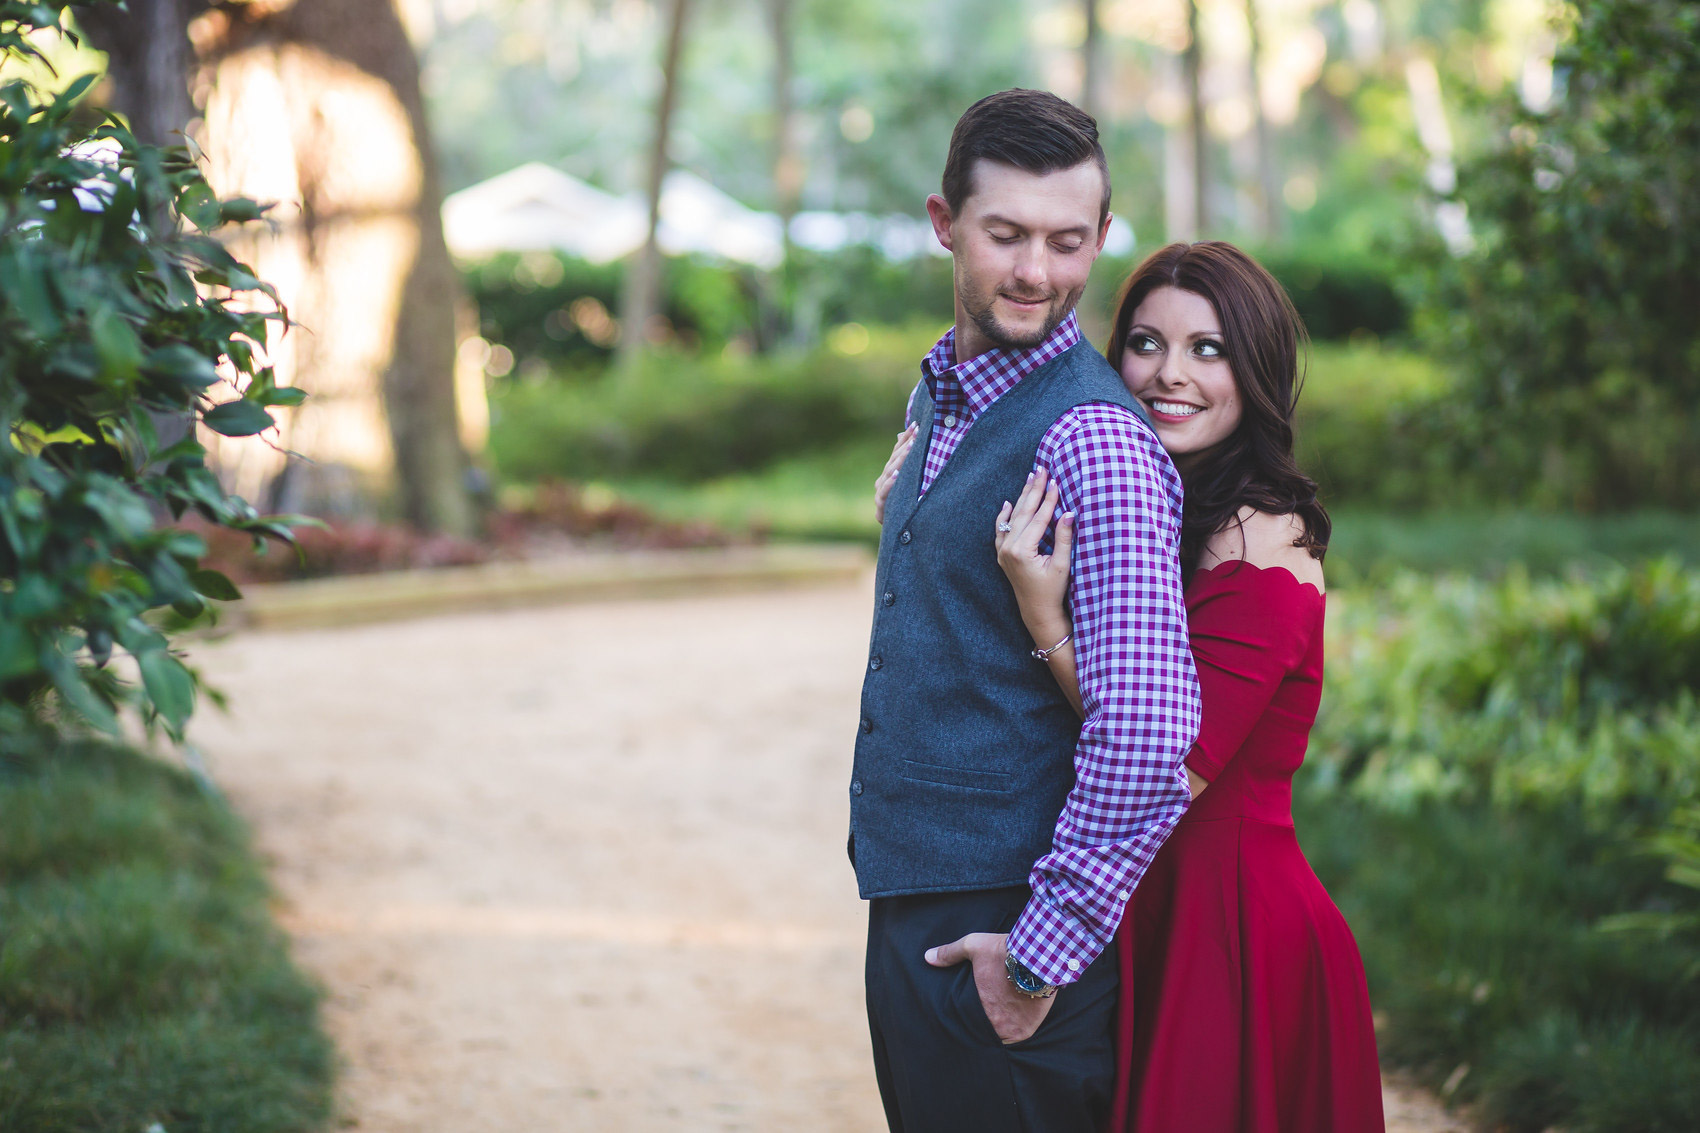 adam-szarmack-jacksonville-wedding-photographer-washington-oaks-gardens-state-park-engagement-17.jpg